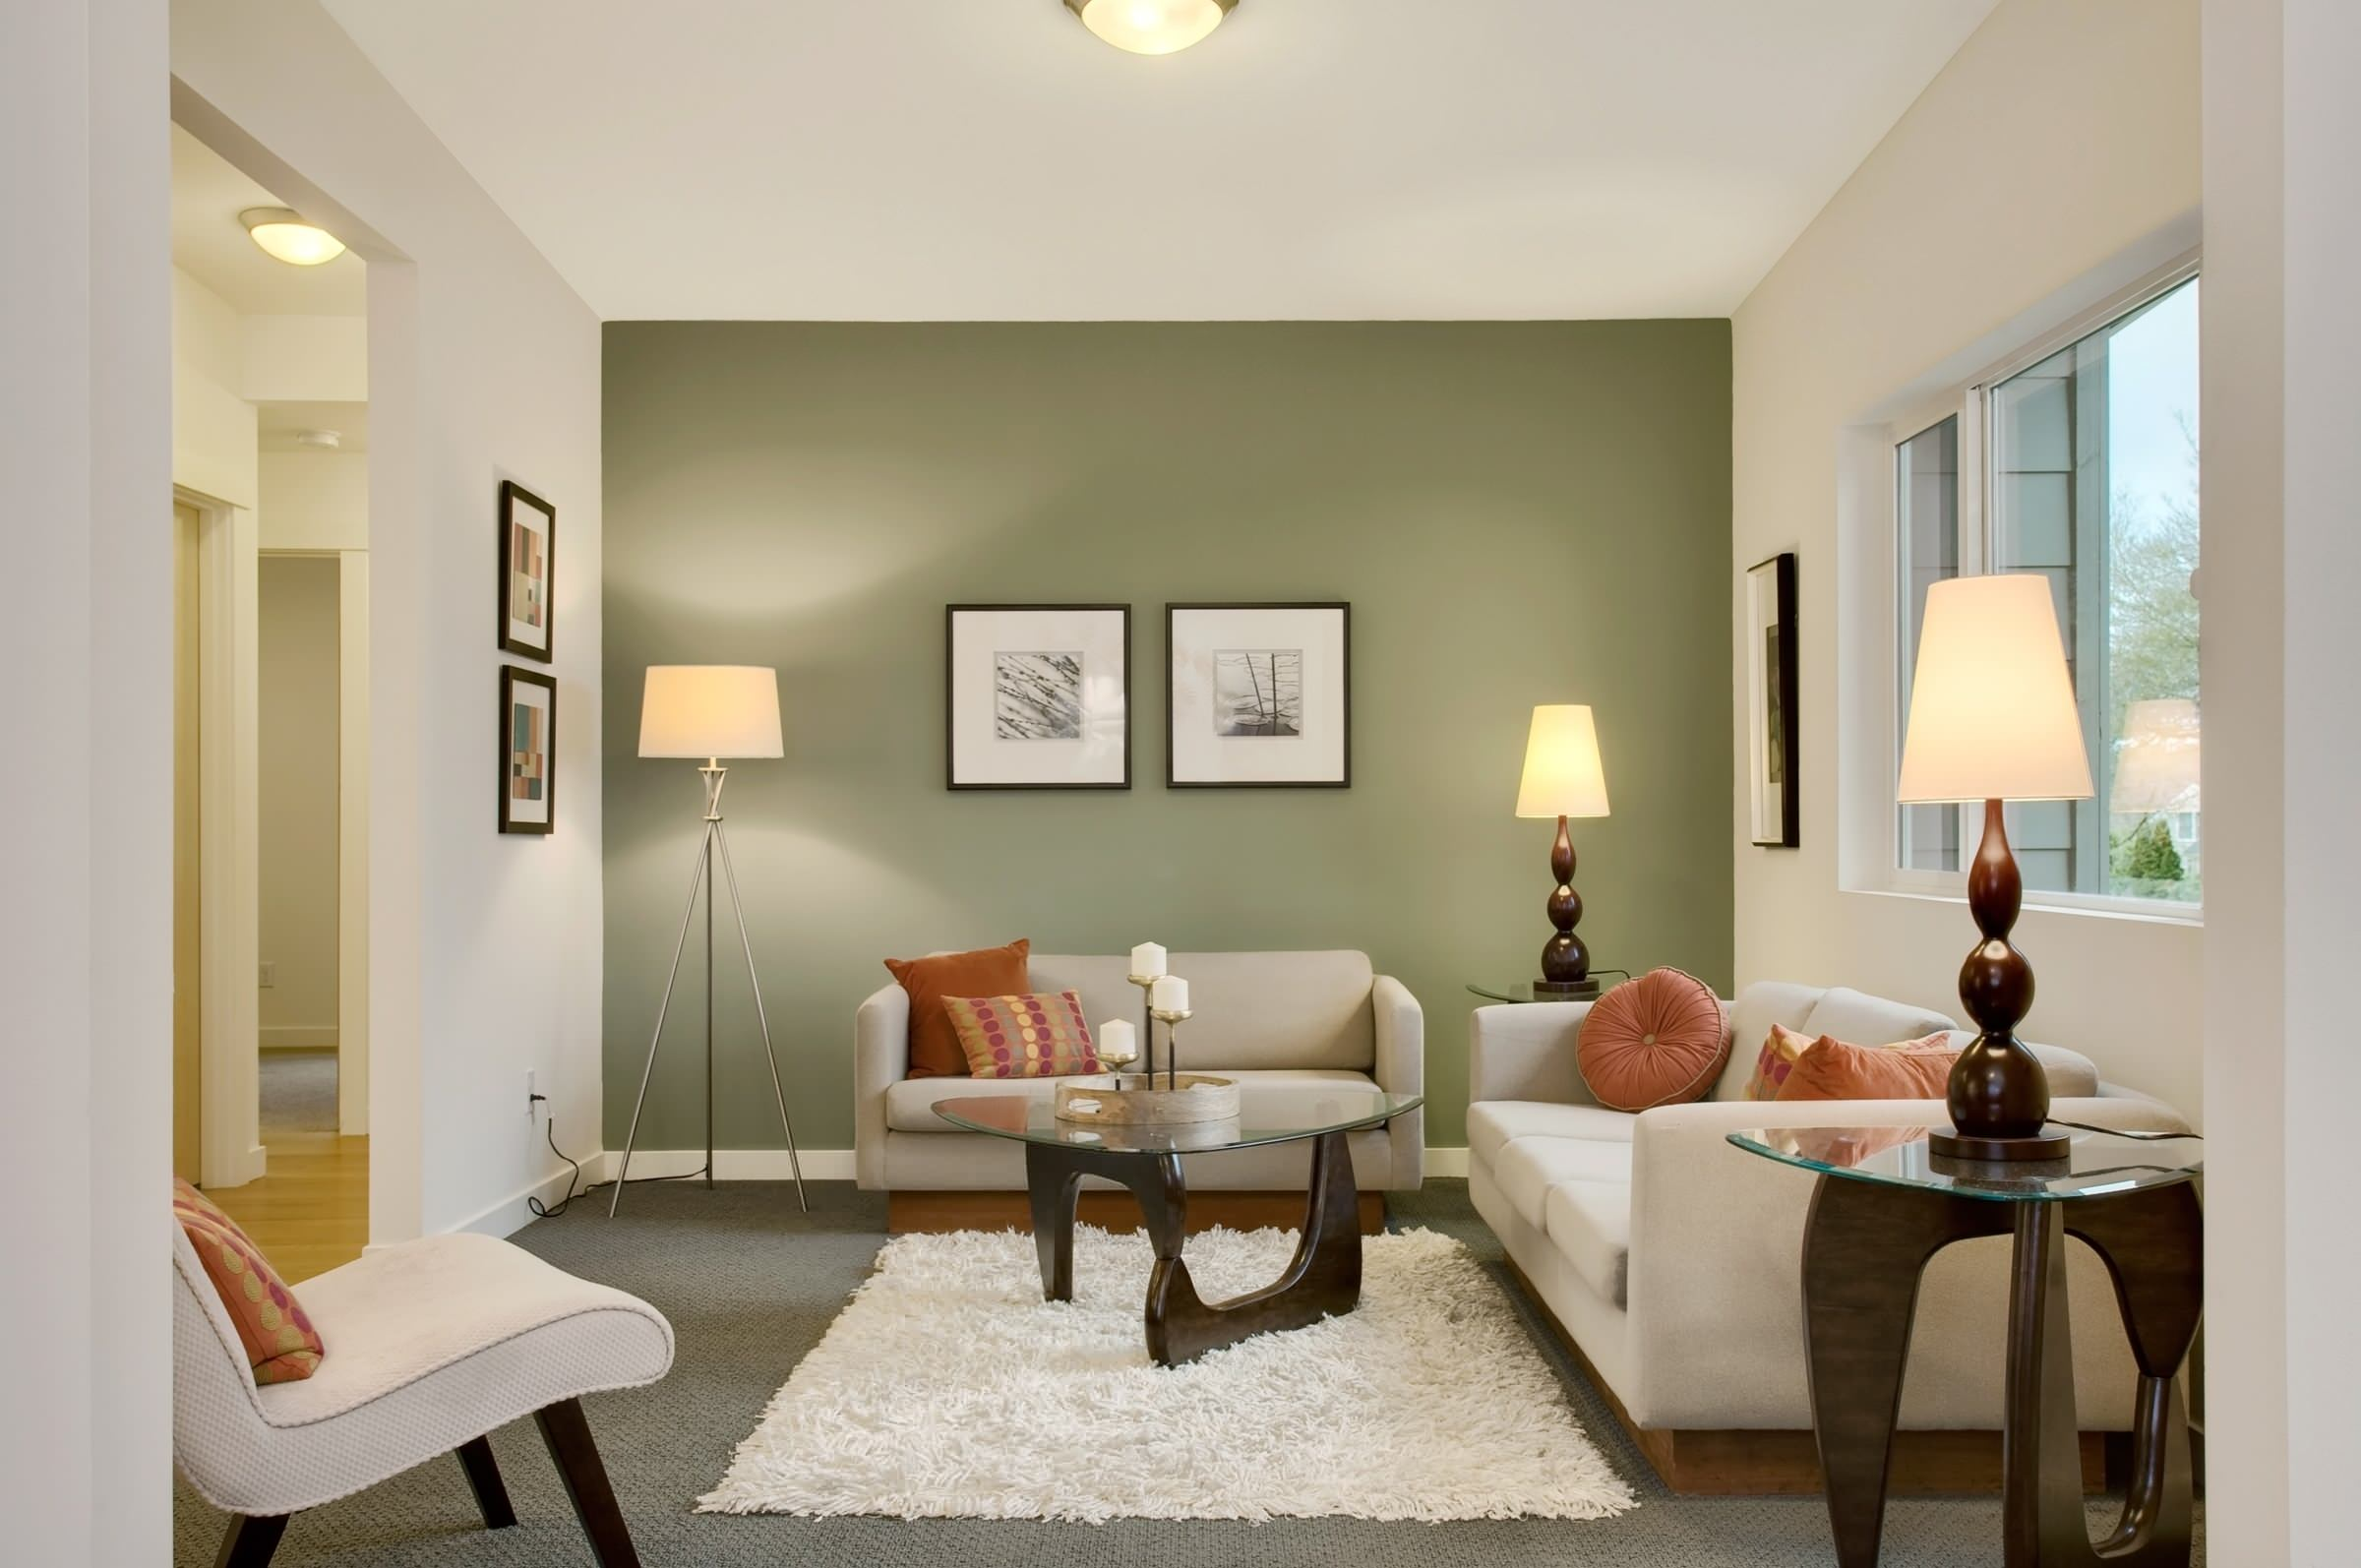 75 Beautiful Green Living Room Pictures Ideas February 2021 Houzz